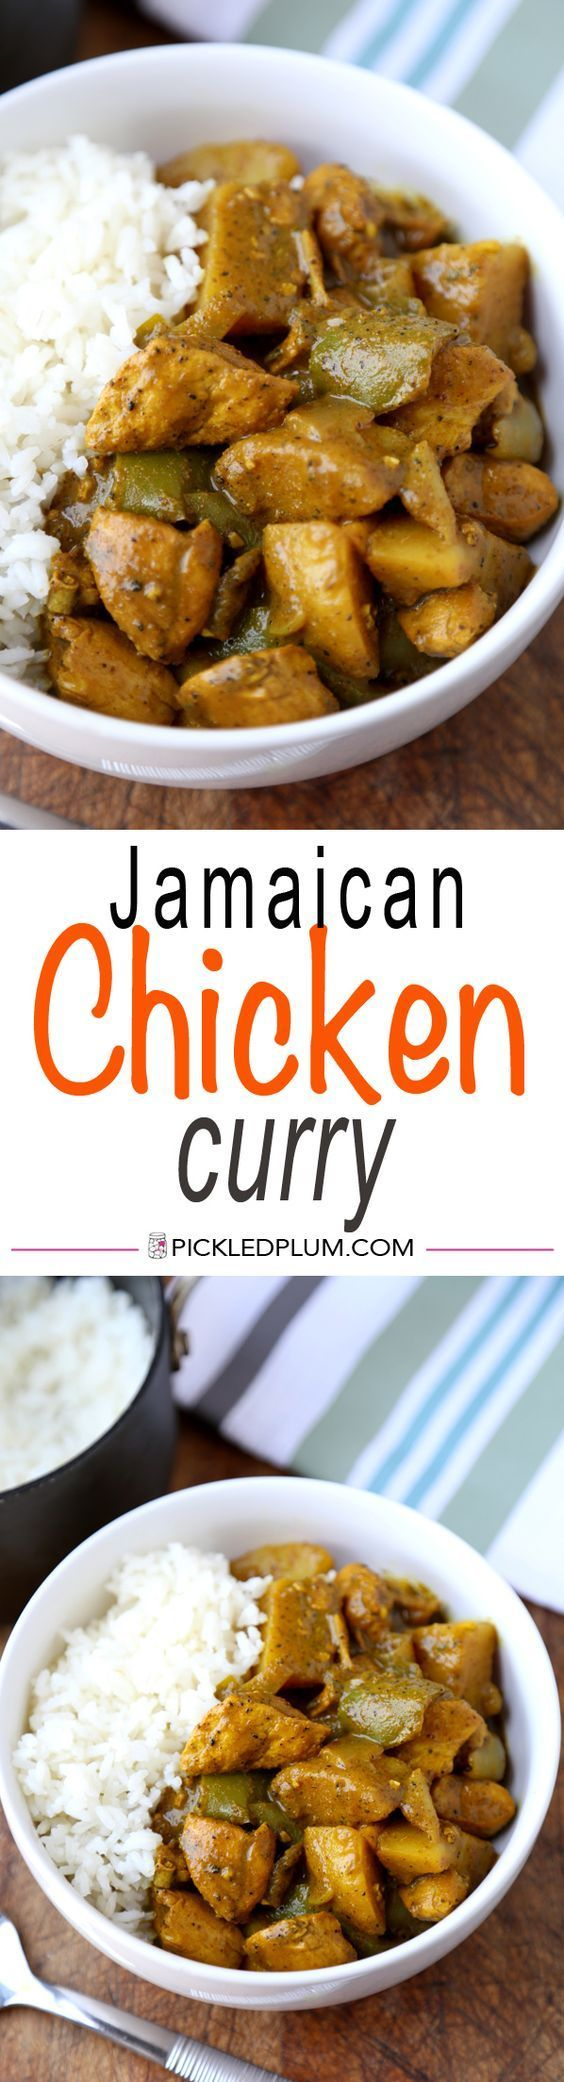 Jamaican Chicken Curry Recipe - Hot and Spicy! This is a quick and easy recipe for a fiery curry! http://www.pickledplum.com/jamaican-chicken-curry-recipe/